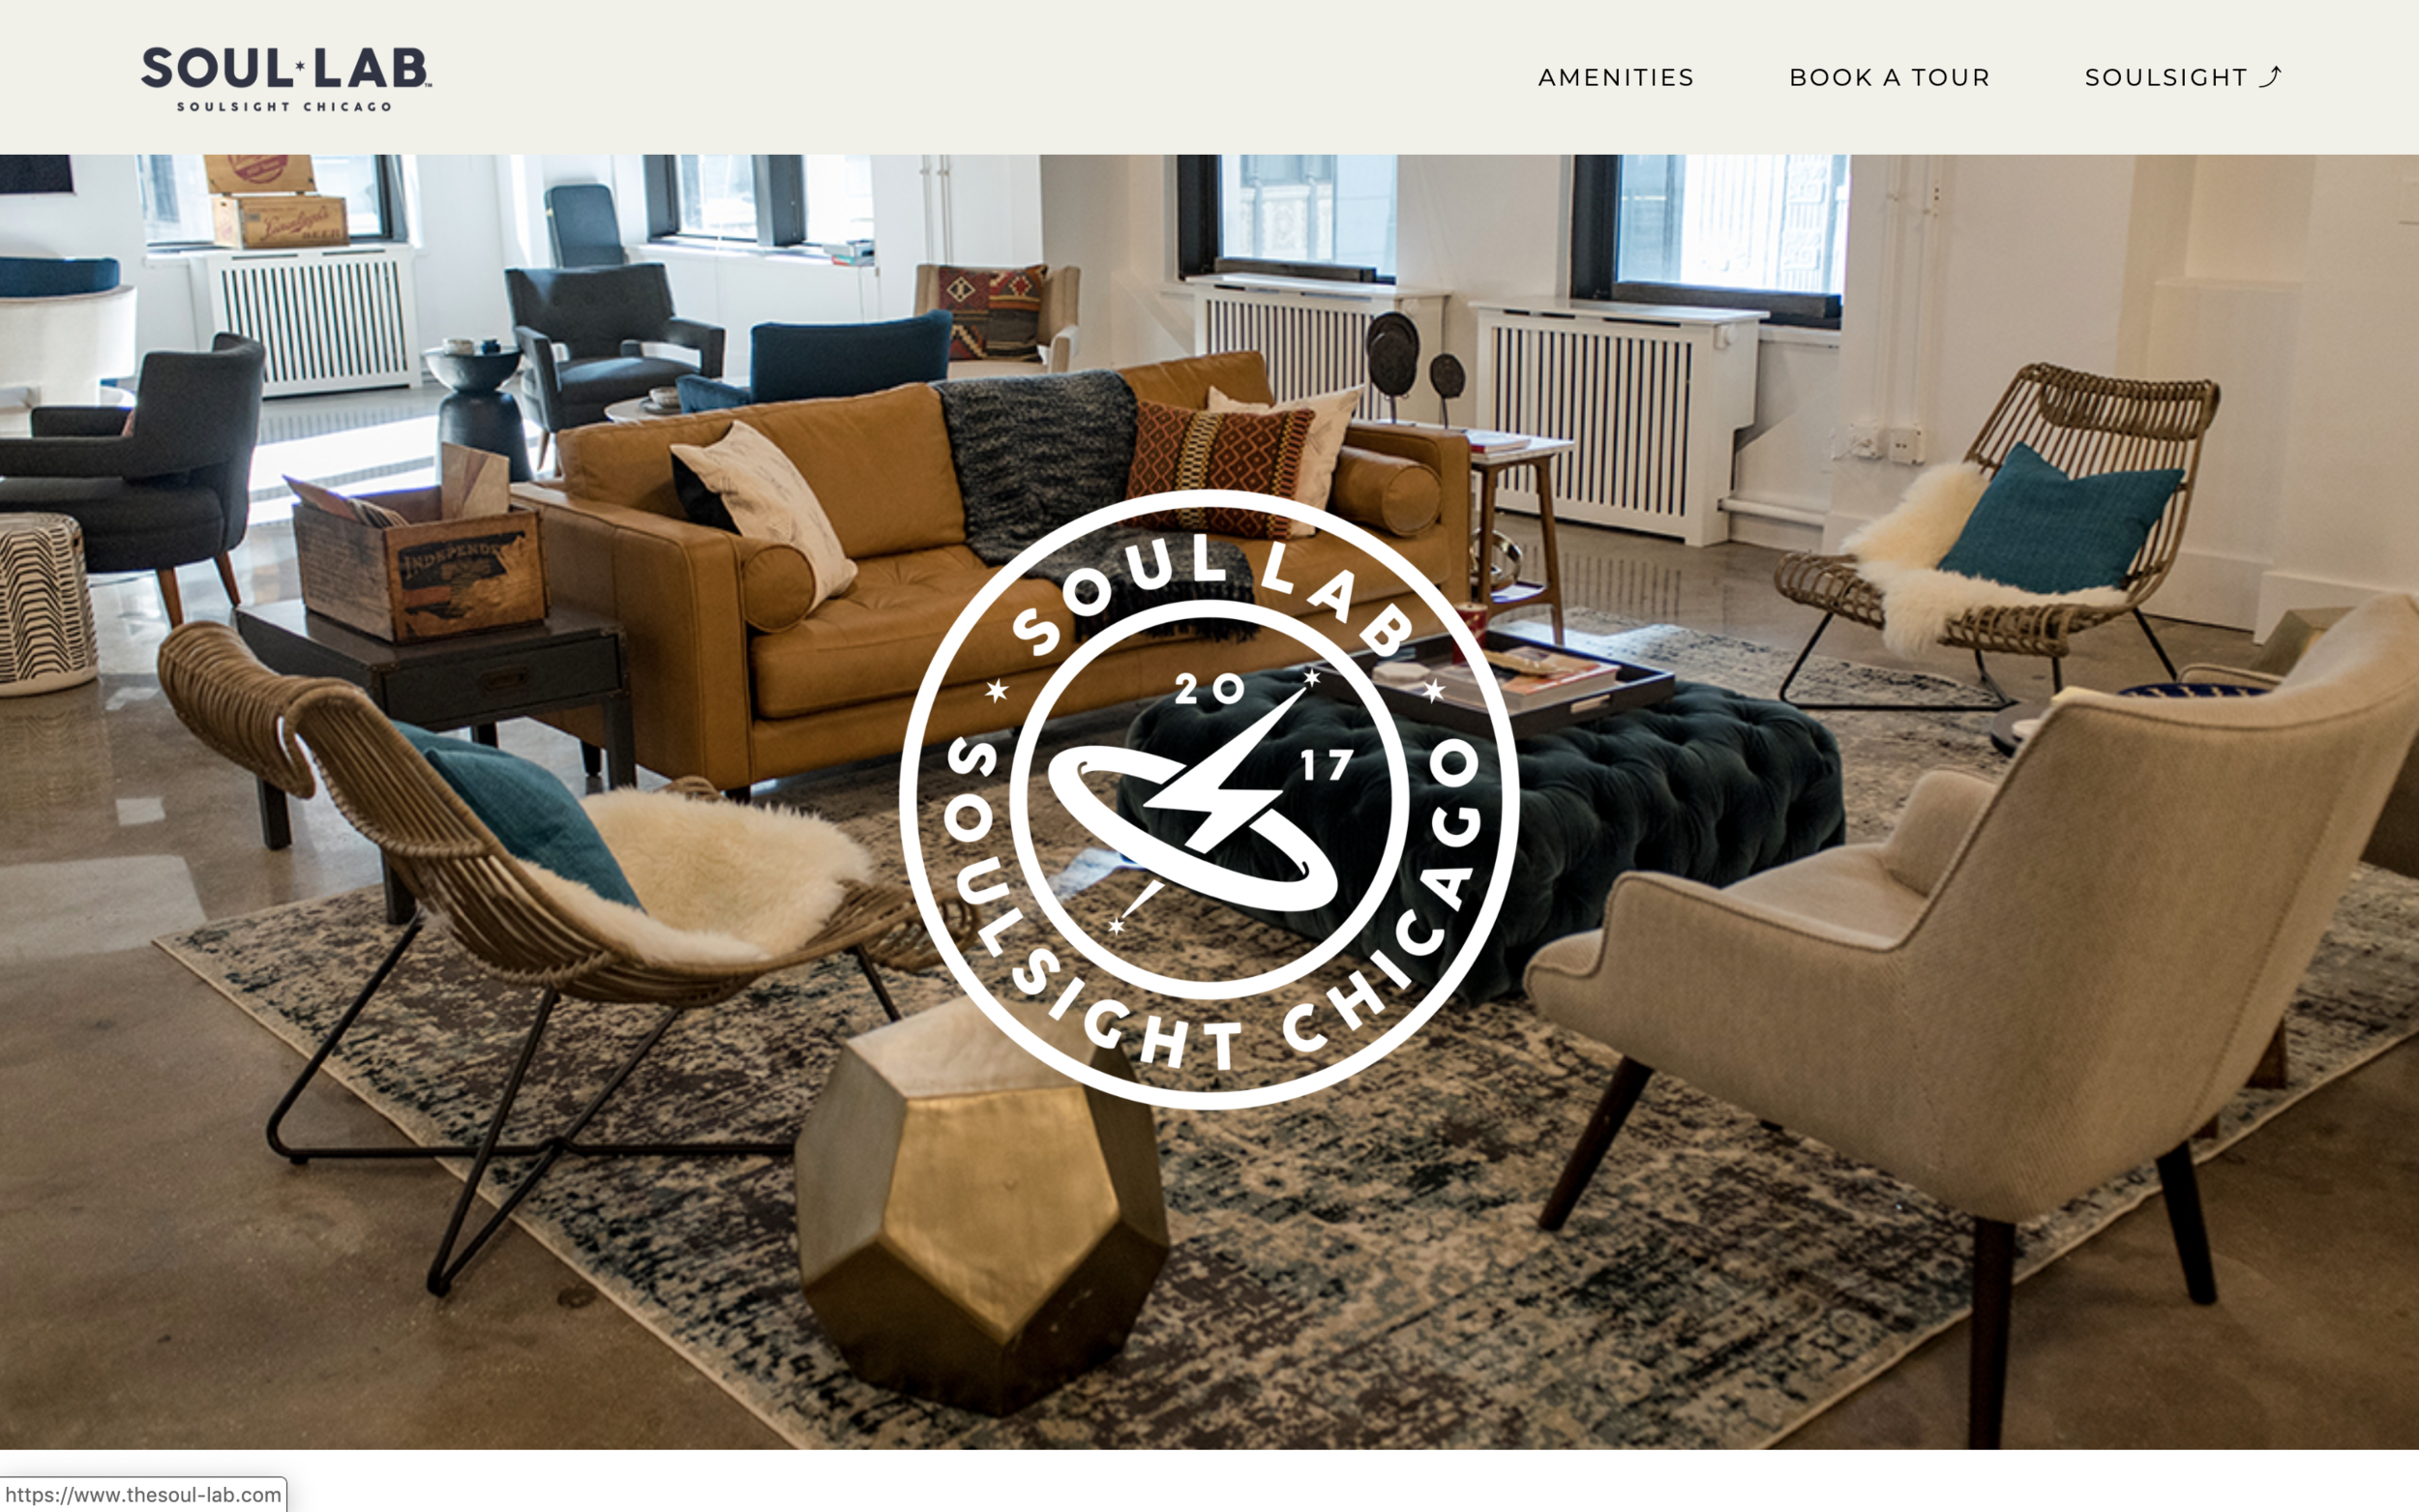 thesoul-lab.com - Modern Squarespace Website BuildWe were approached by the Soul Lab team to help create an online marketing tool to help build brand awareness as well as give users an insight of what the business offers. The result is an awesome example of what Squarespace websites can look and function like.